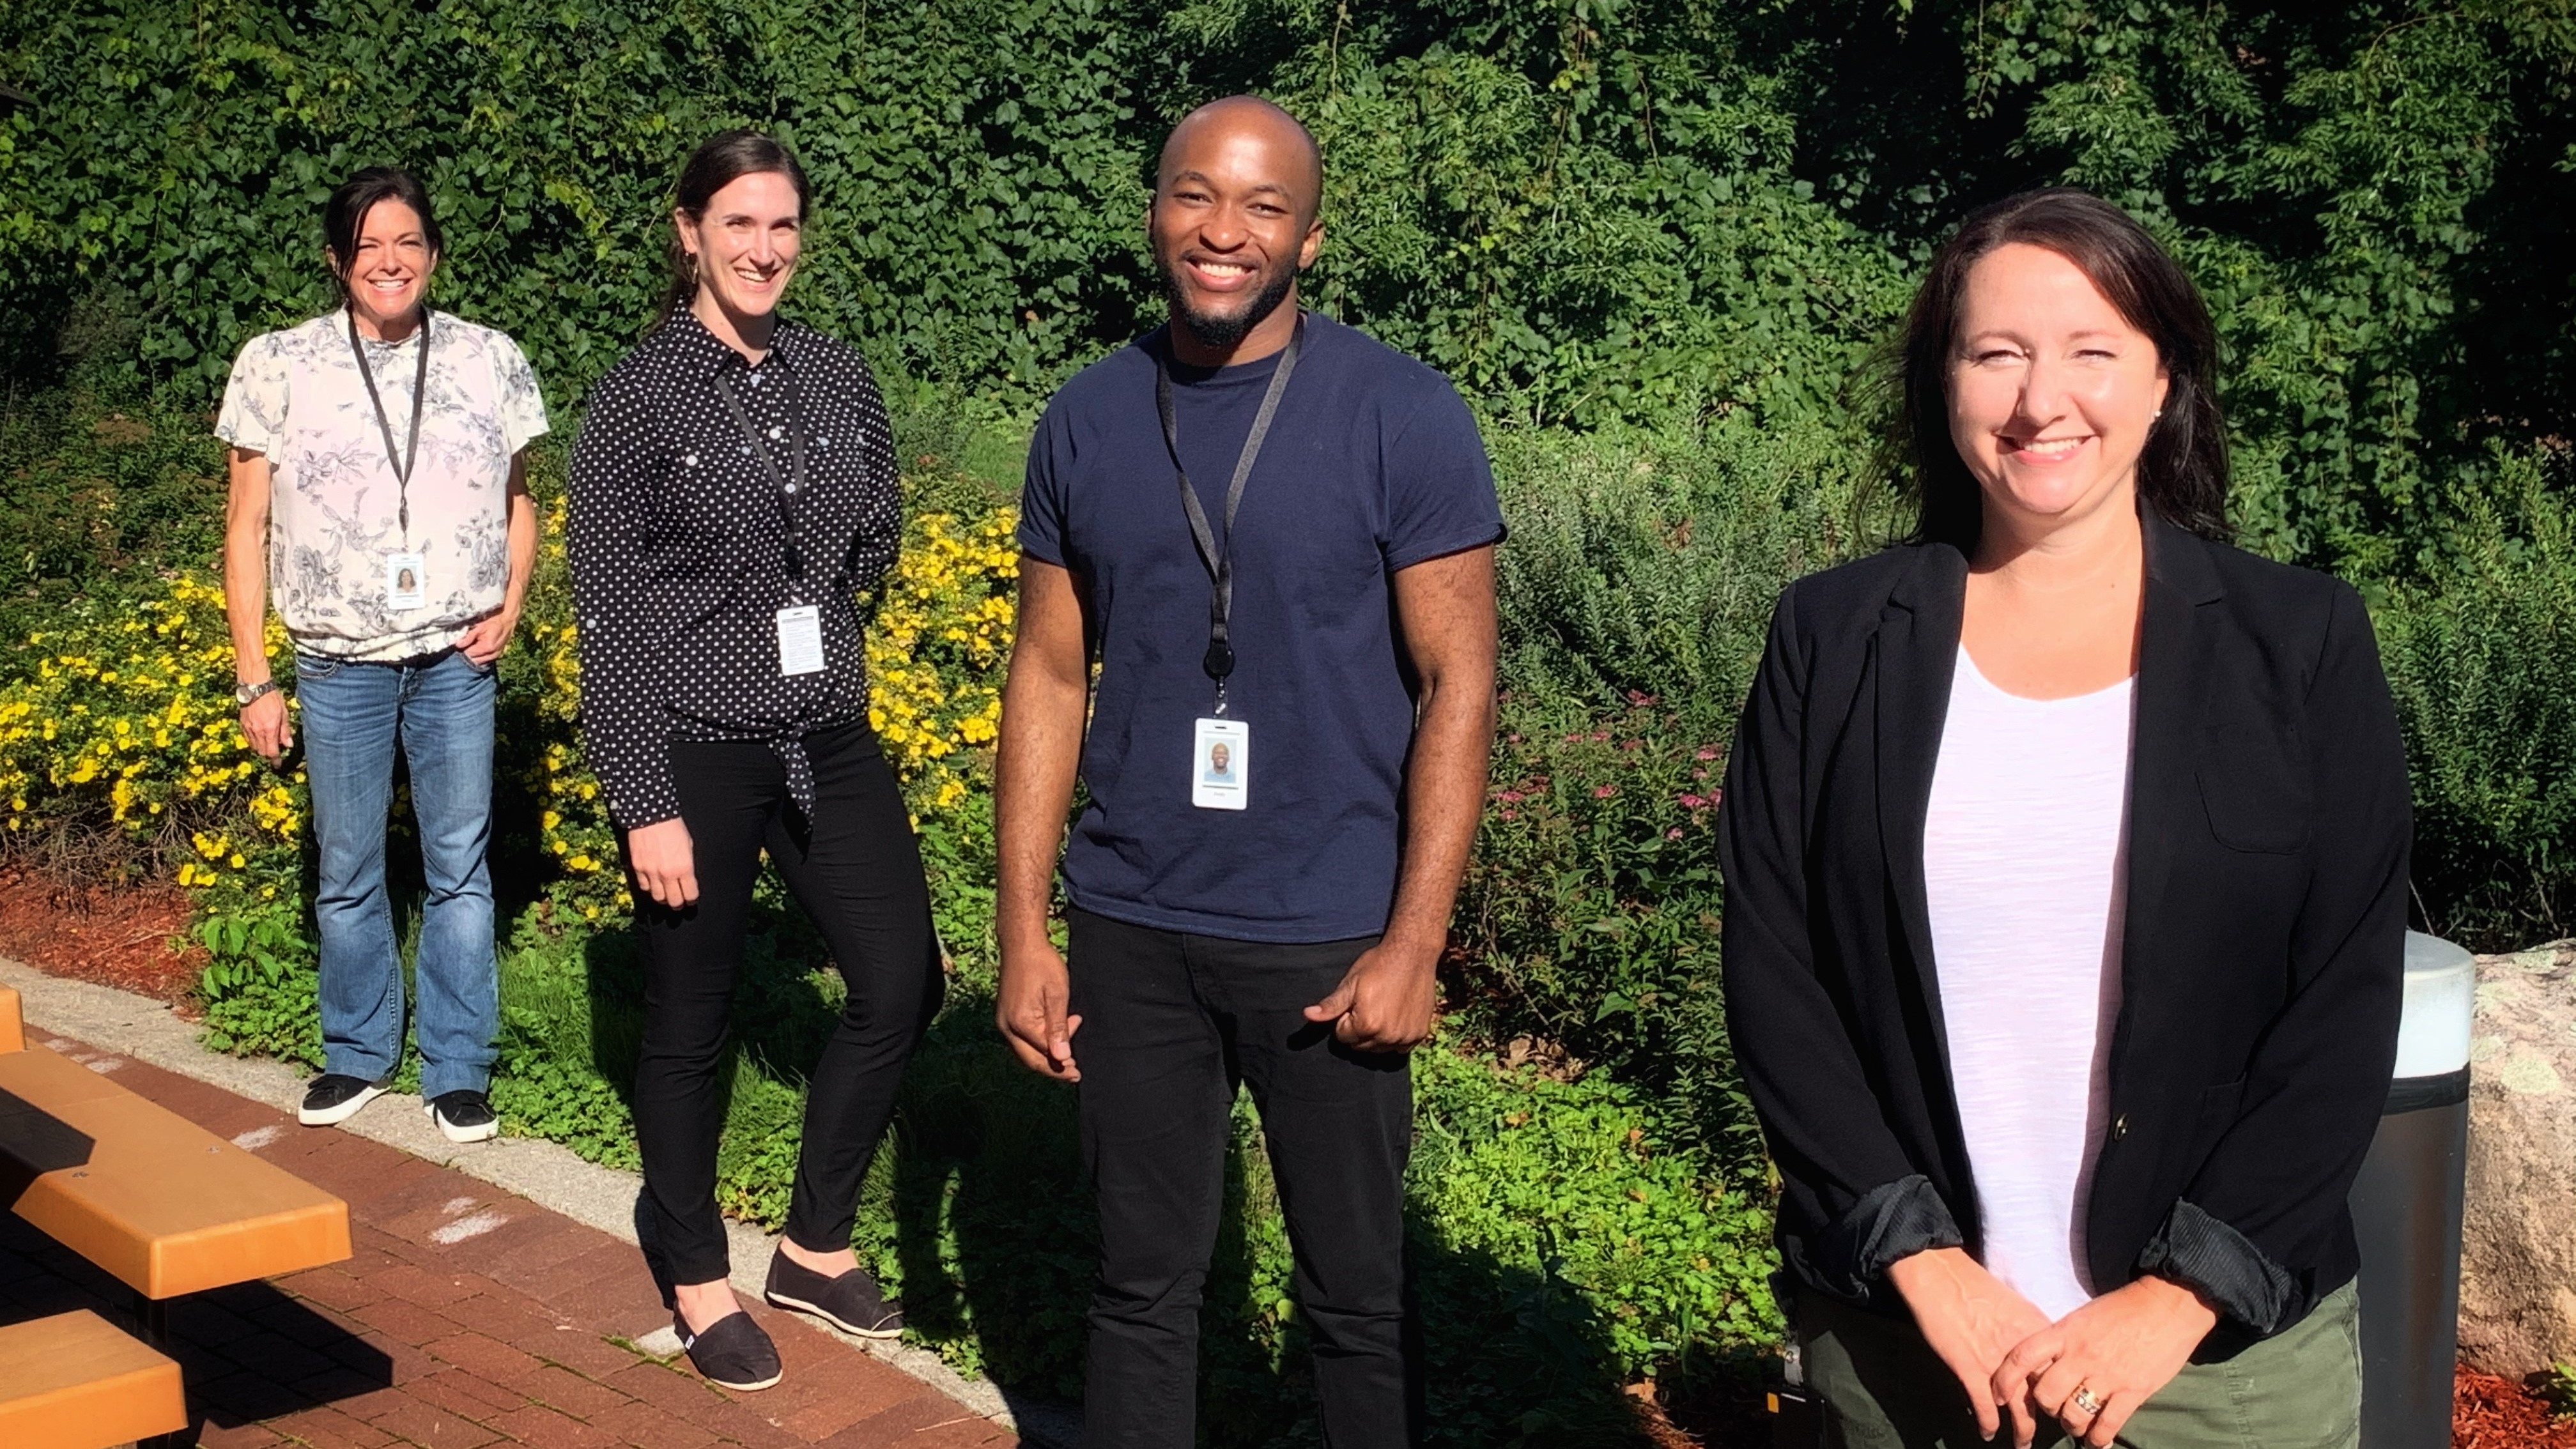 Lab team members Stacey Vitali, Carissa Kohnen, Andy Tshiula Kalenga and Valerie Conrod support the work of Canada's Immunity Task Force to provide the data needed to understand the scale of COVID-19 infection in Canada.